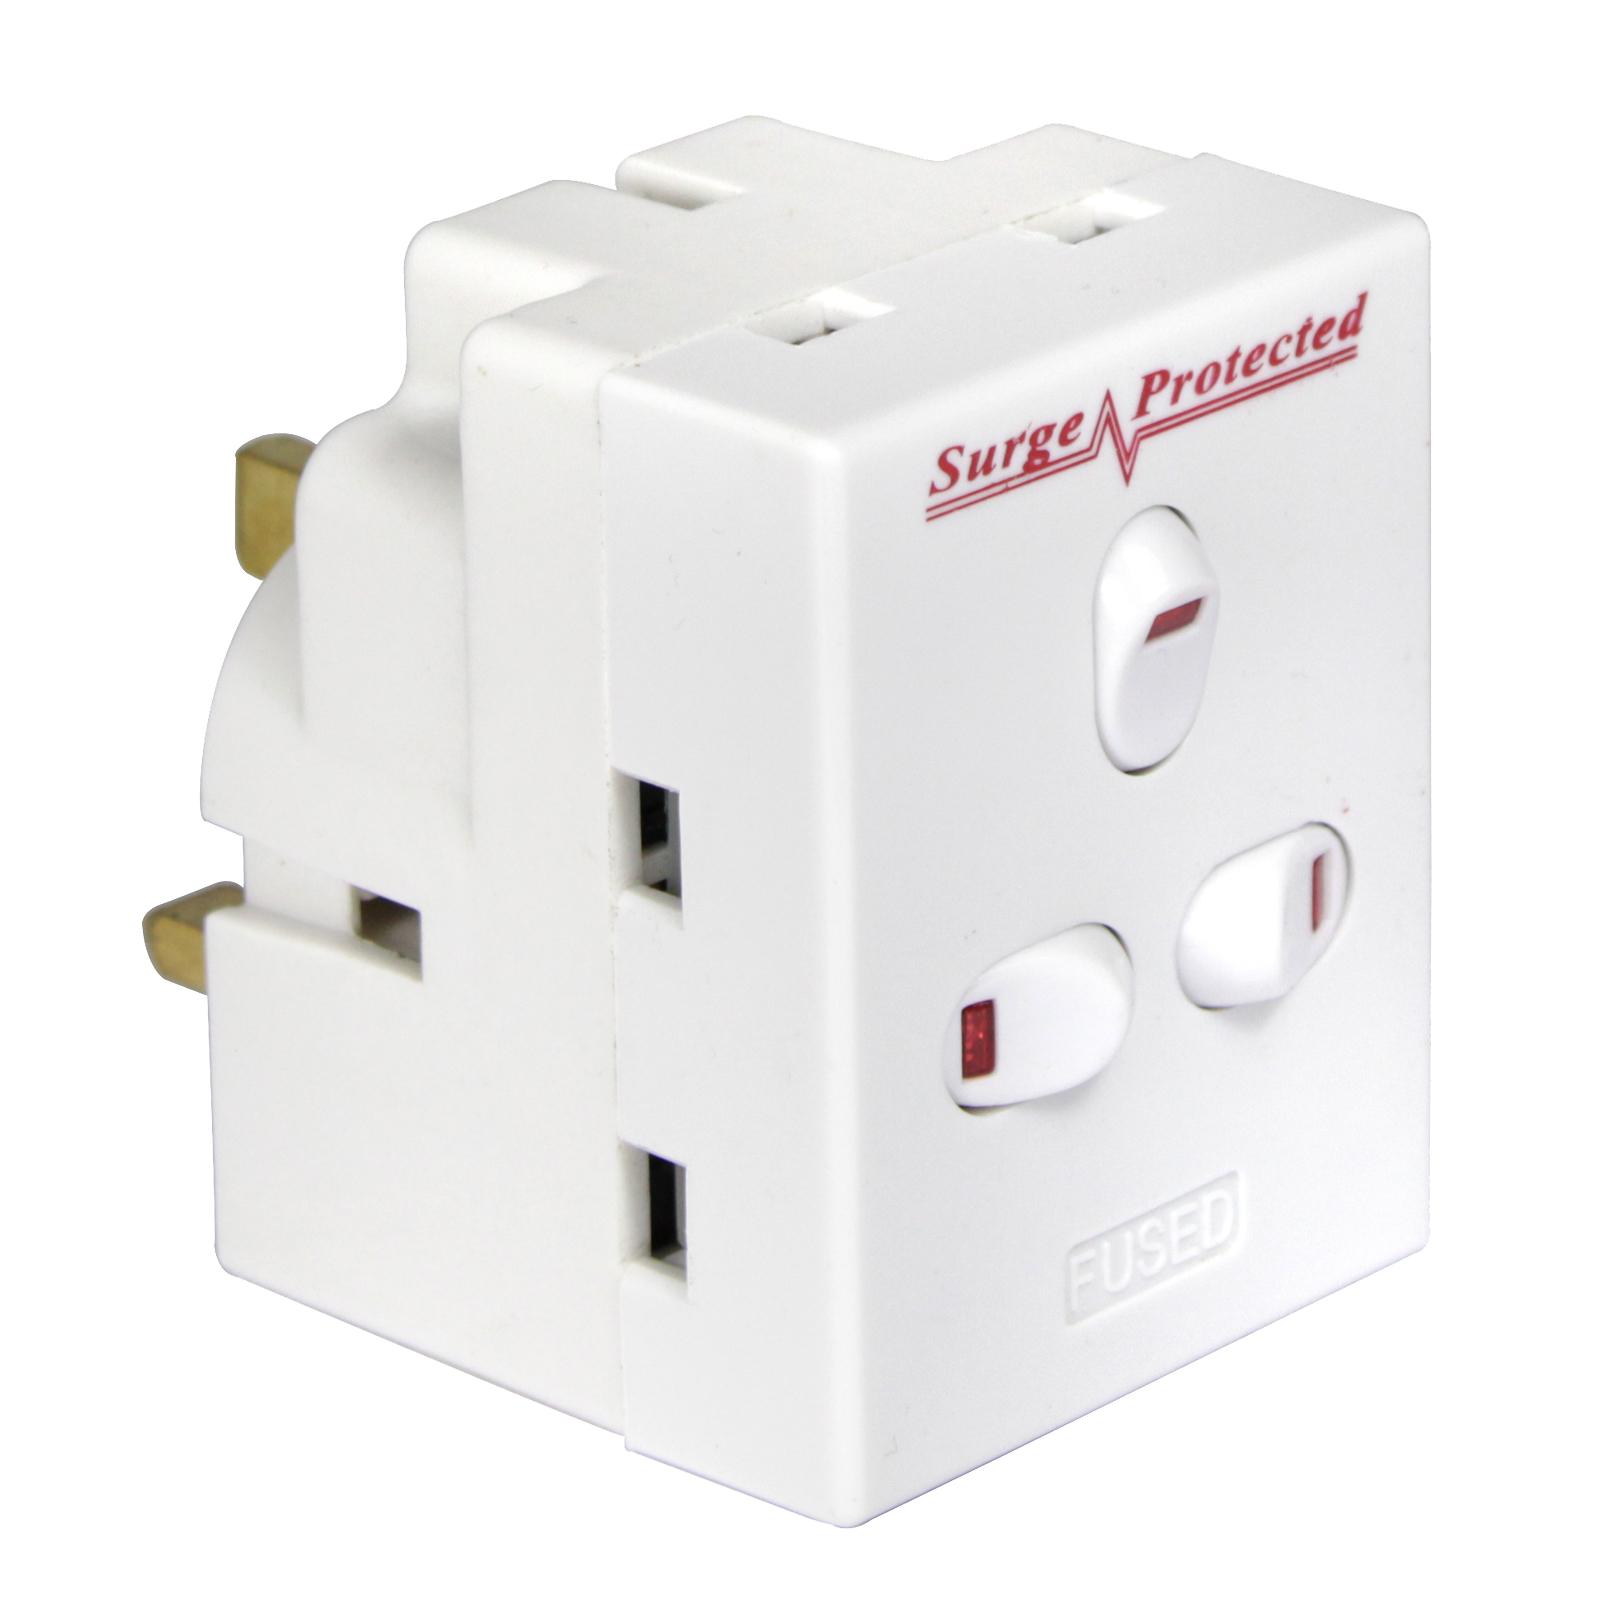 PIFCO SWITCHED 3WAY SURGE ADAPTOR